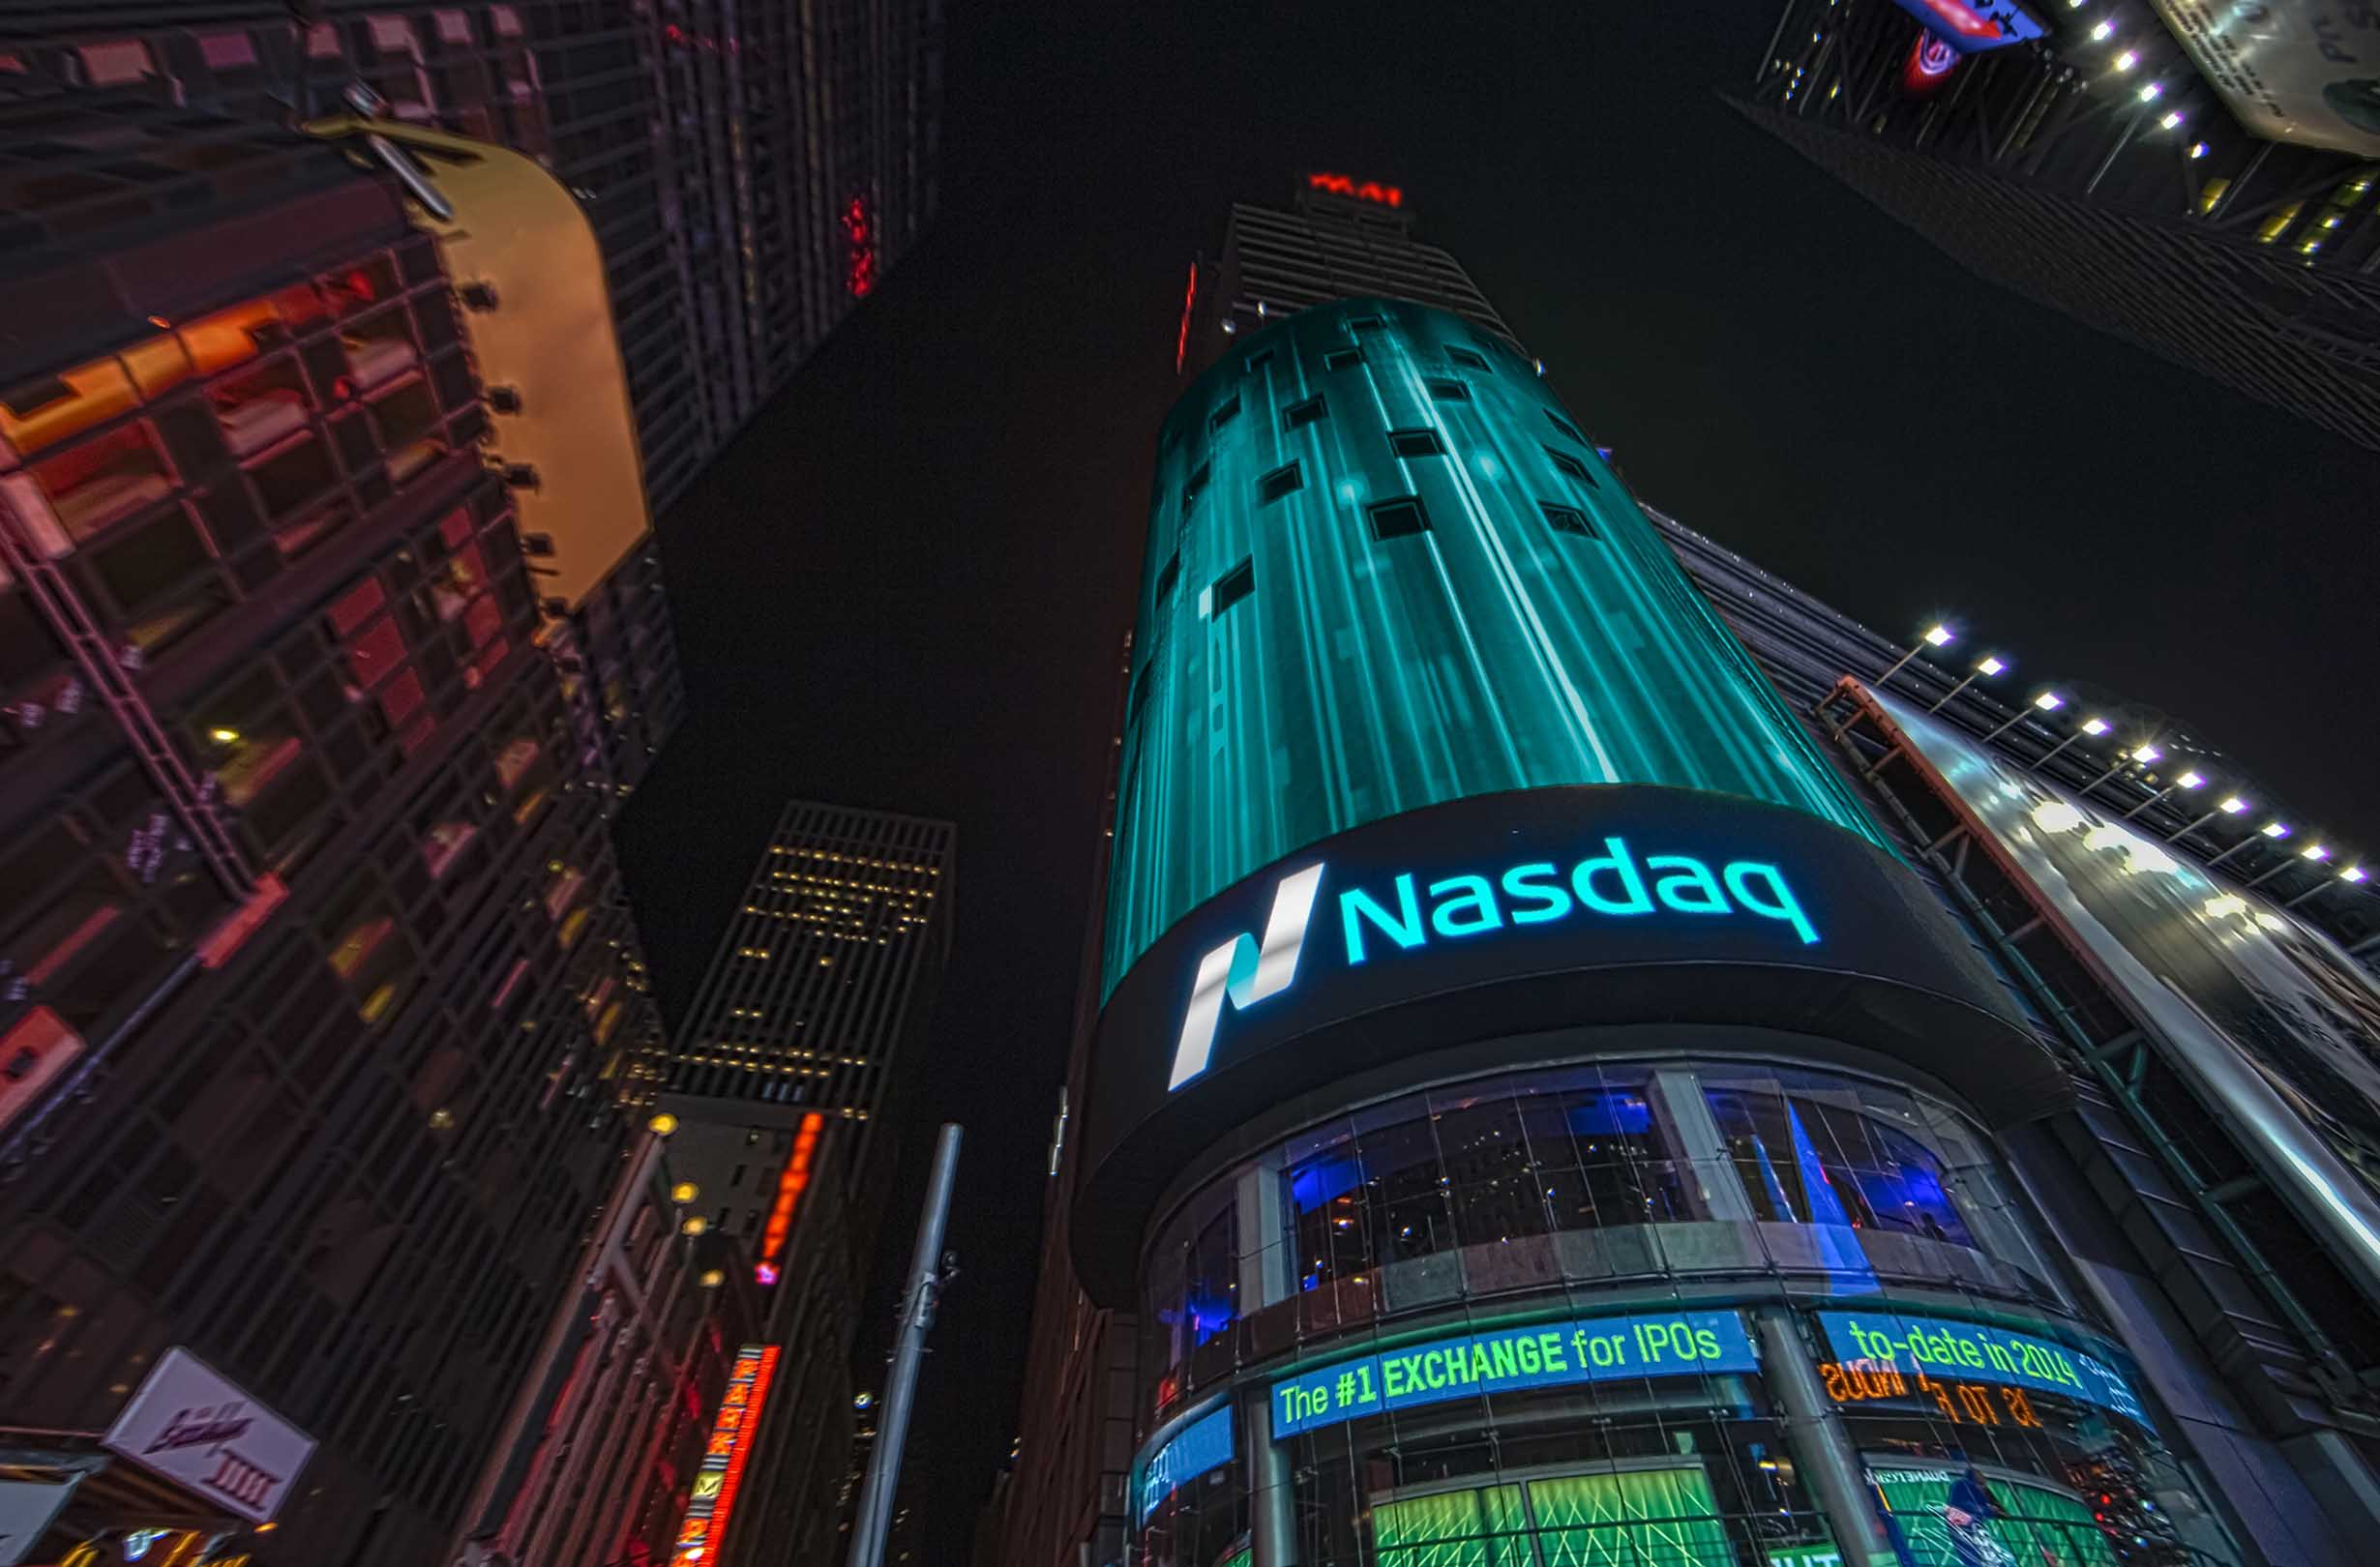 Sweden And NASDAQ Collaborates For Blockchain Based Mutual Fund Trading